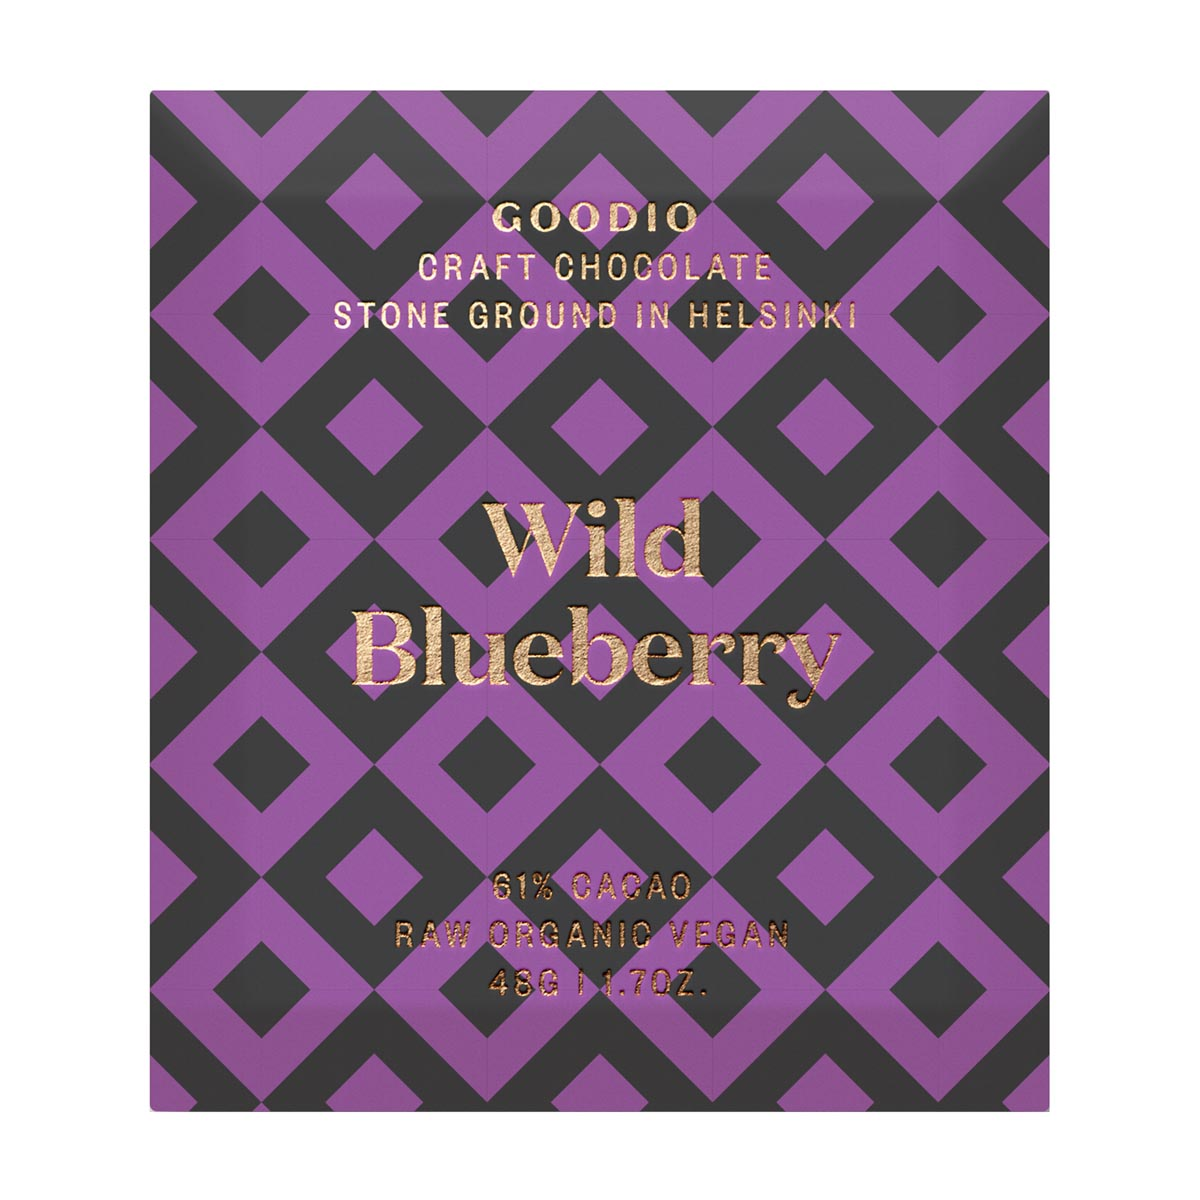 Goodio Organic Raw Chocolate - Wild Blueberry 61% (48g)